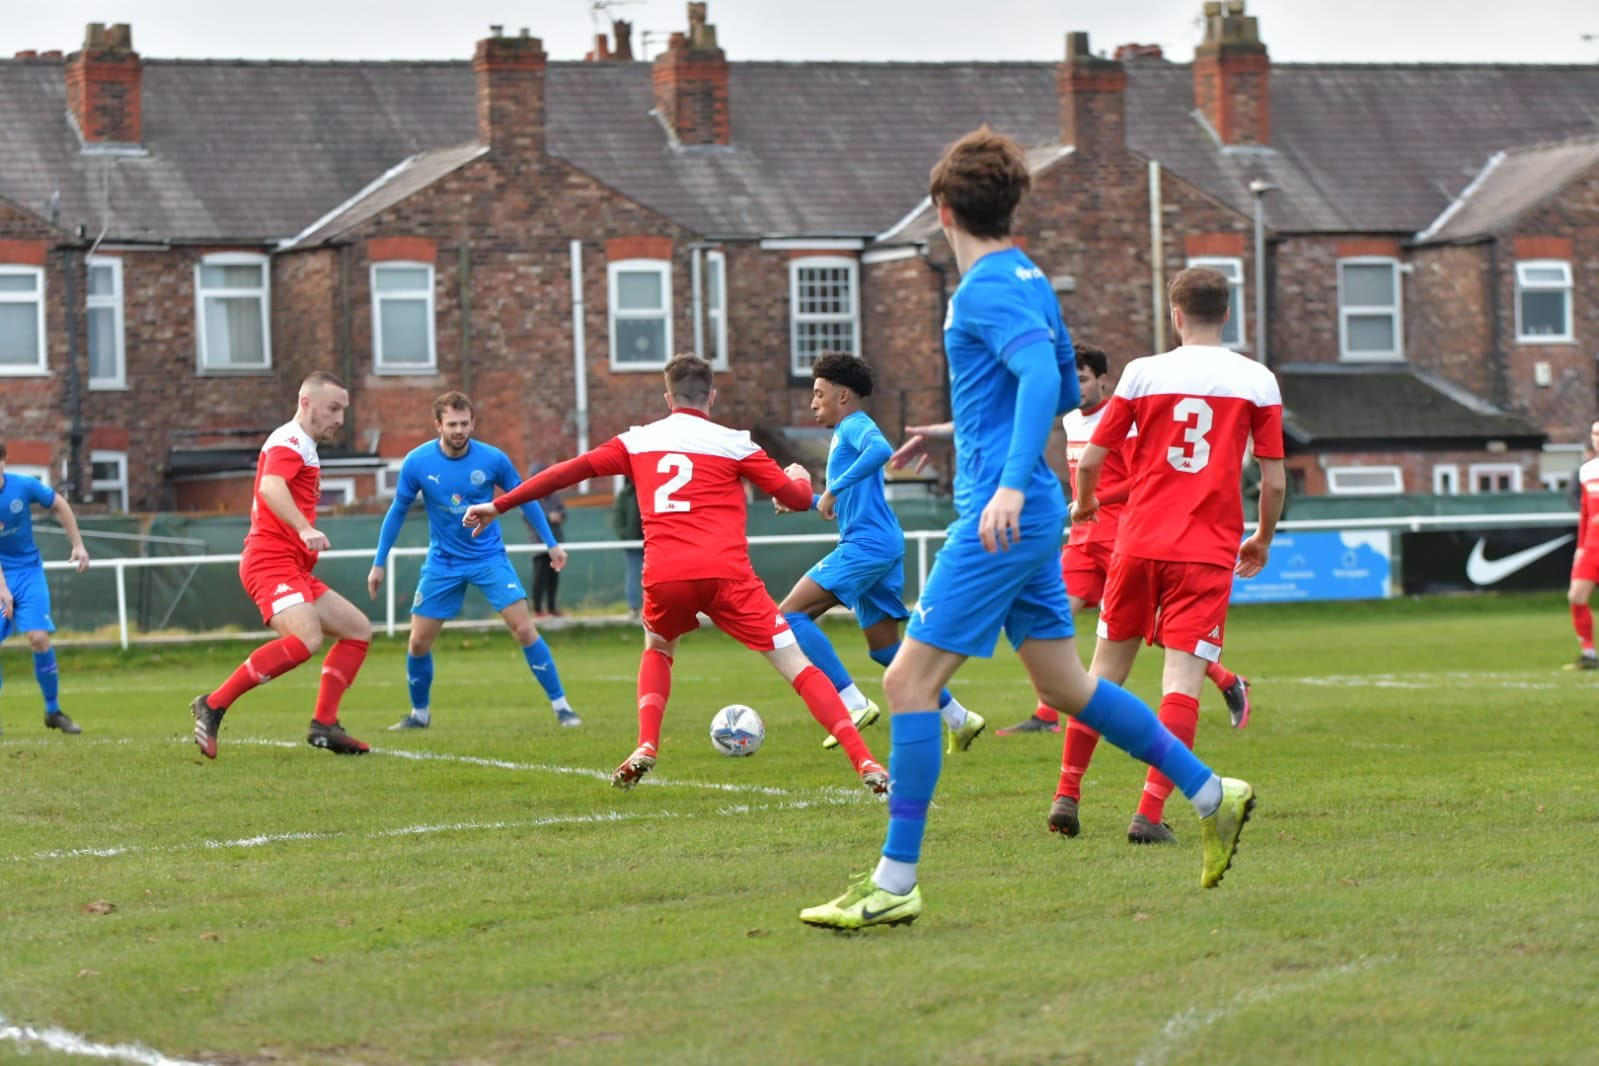 Kane Drummond scores the opener in the 2-1 FA Vase win over Longridge. Picture by Mark Percy